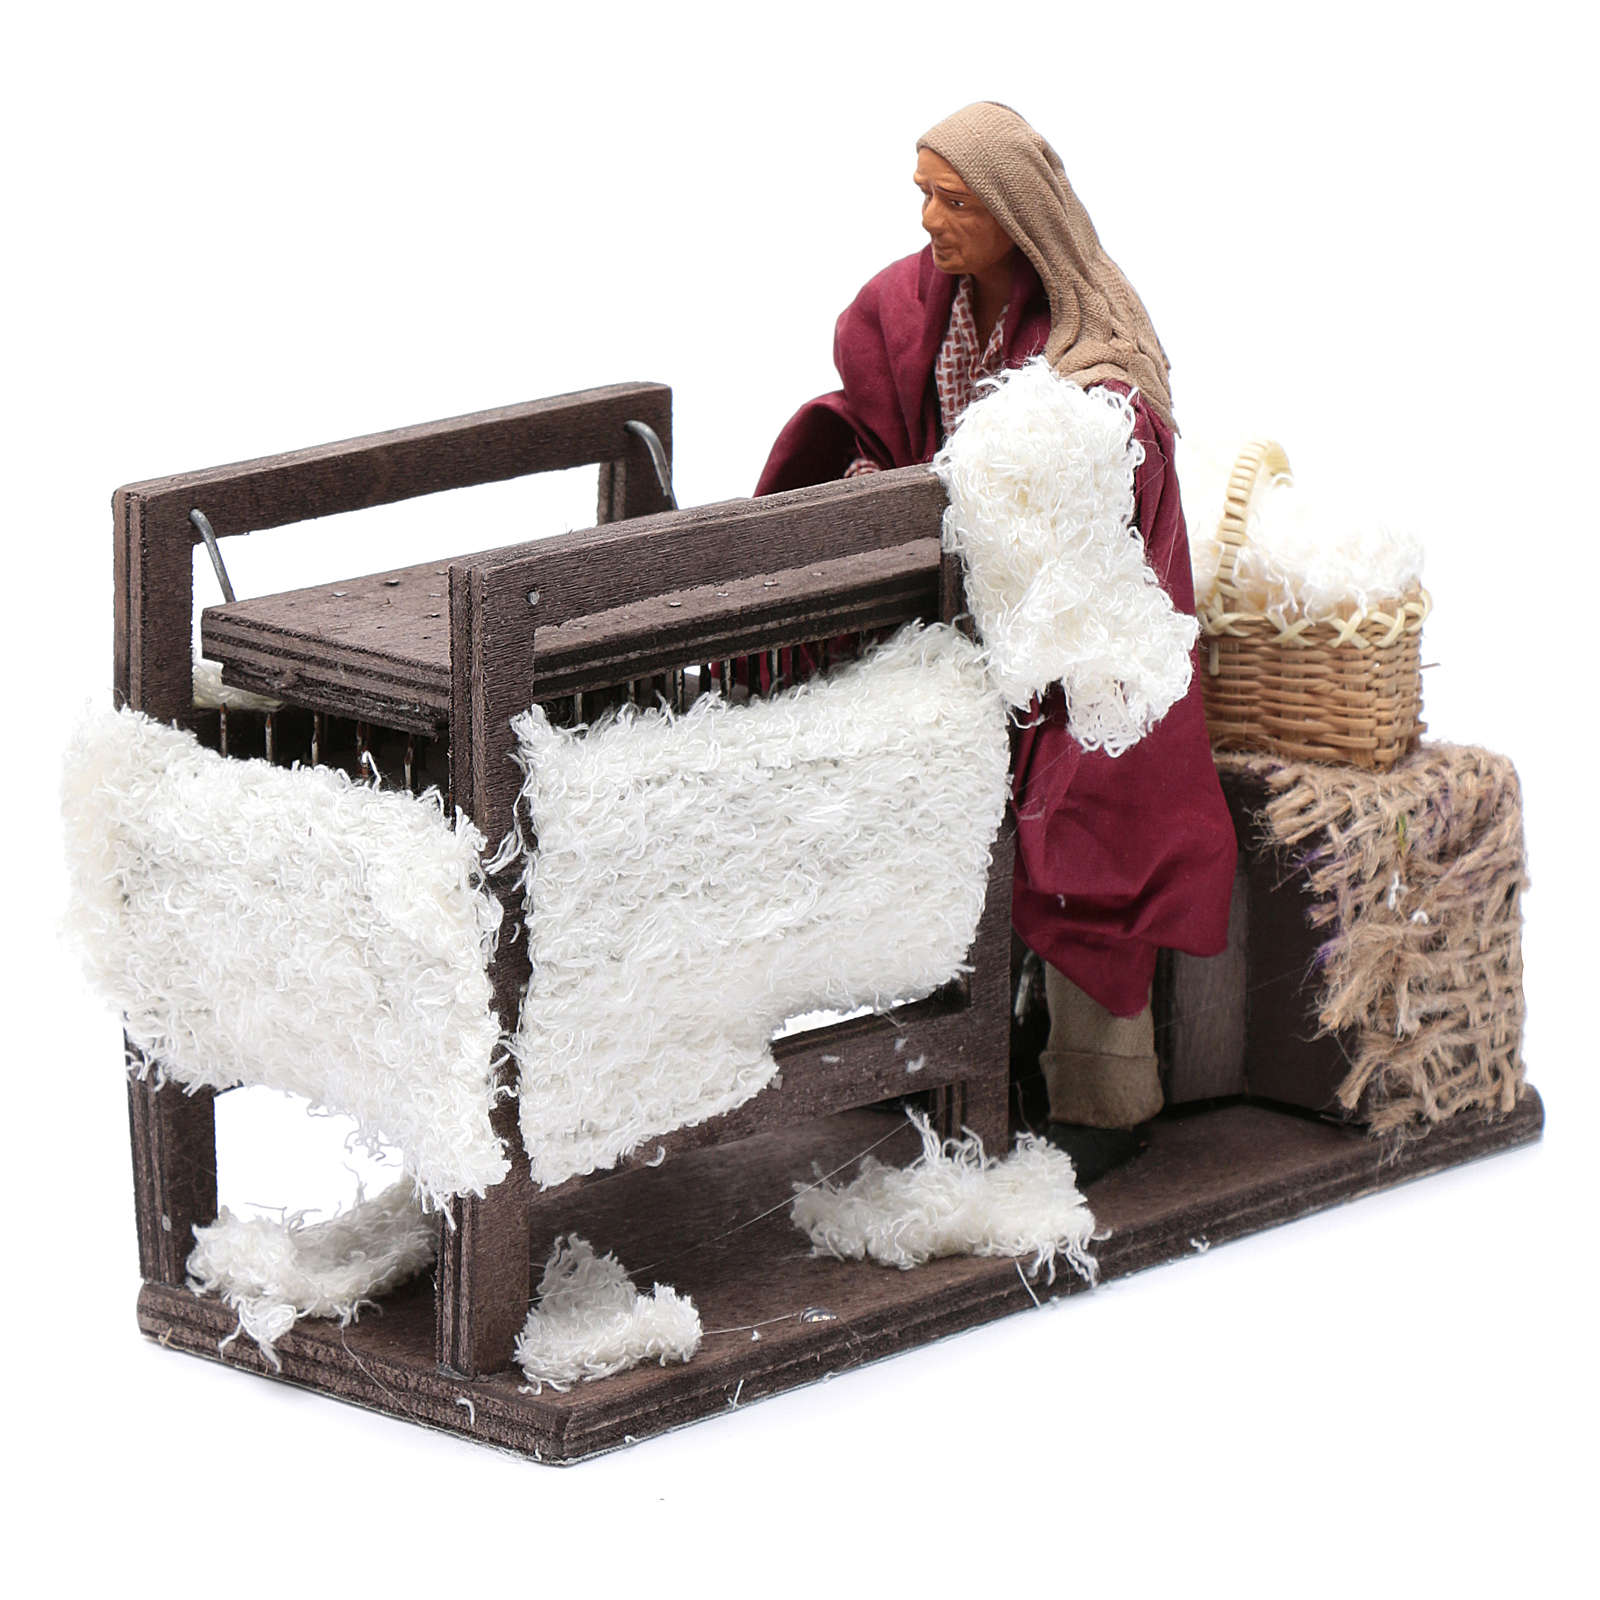 Animated wool teaser scene 14cm neapolitan Nativity 4